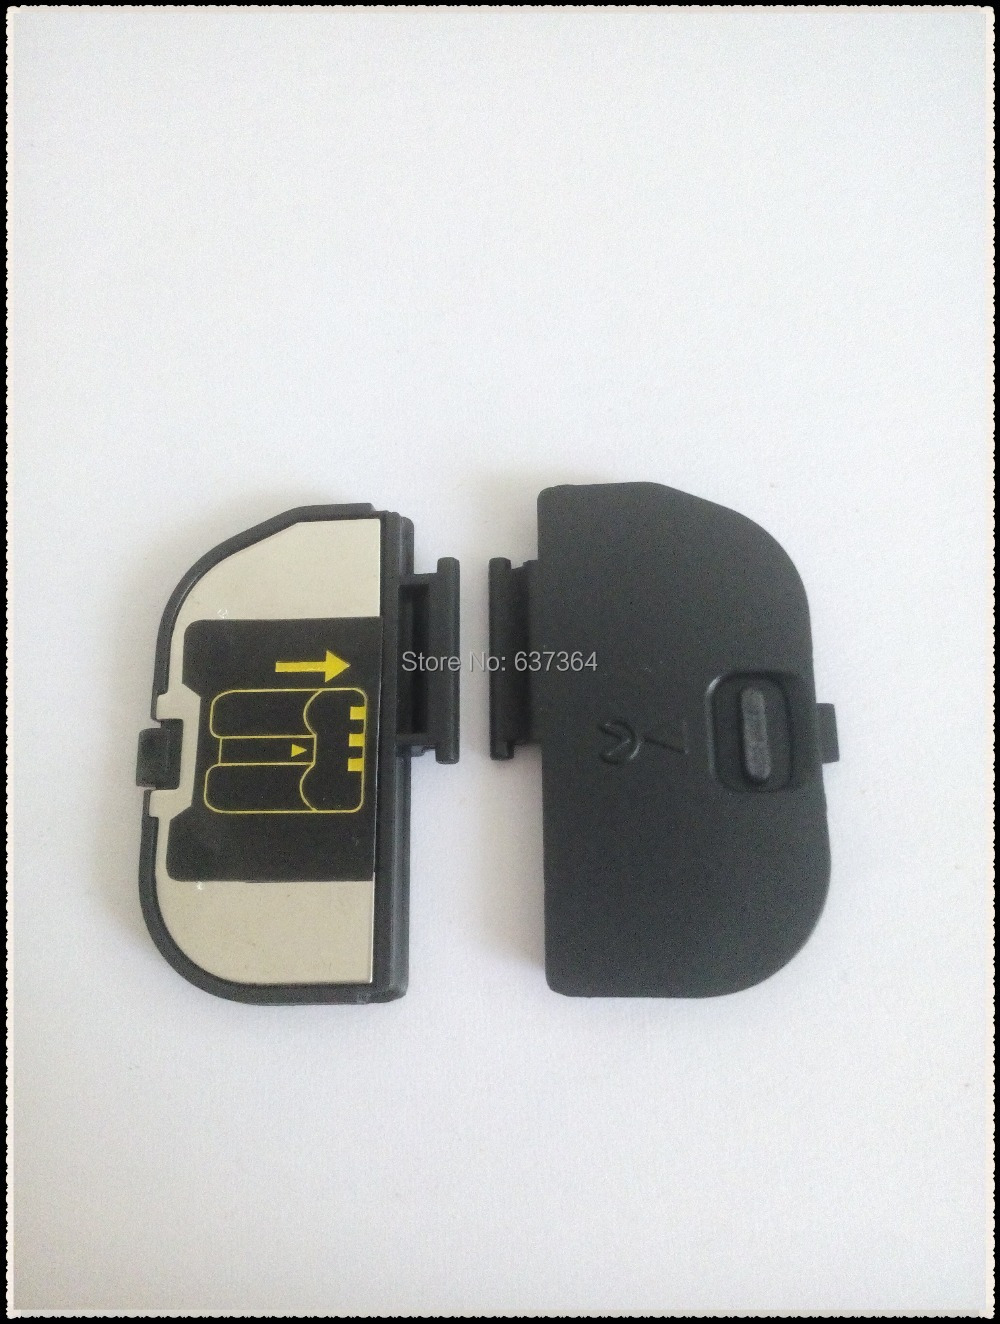 New Battery Cover Door For NIKON D50 D70 D80 D90 D70S Digital Camera Repair Part